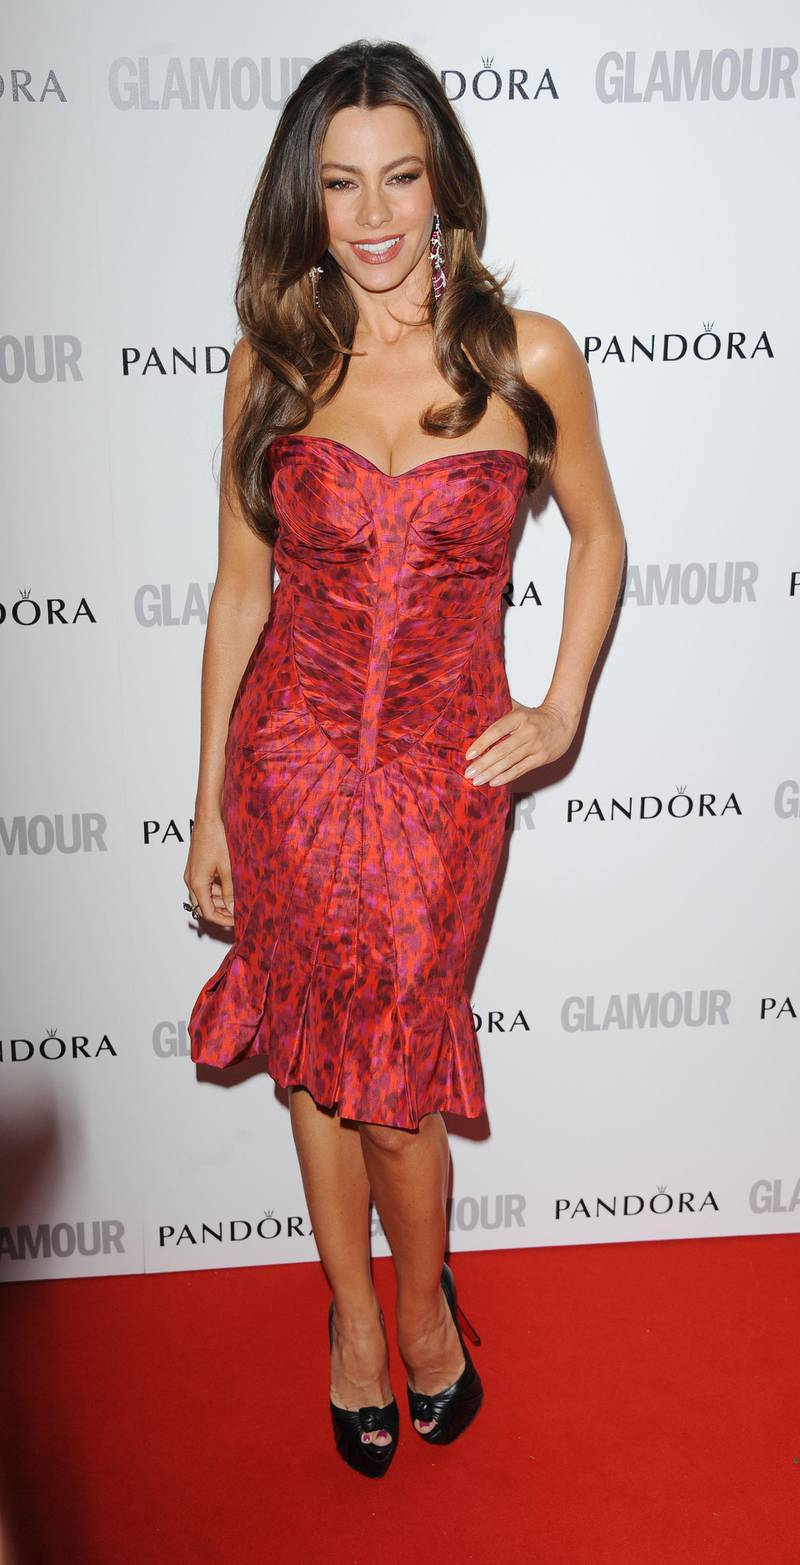 LONDON, UNITED KINGDOM - MAY 29: Sofia Vergara attends Glamour Women of the Year Awards 2012 at Berkeley Square Gardens on May 29, 2012 in London, England. (Photo by Stuart Wilson/Getty Images)